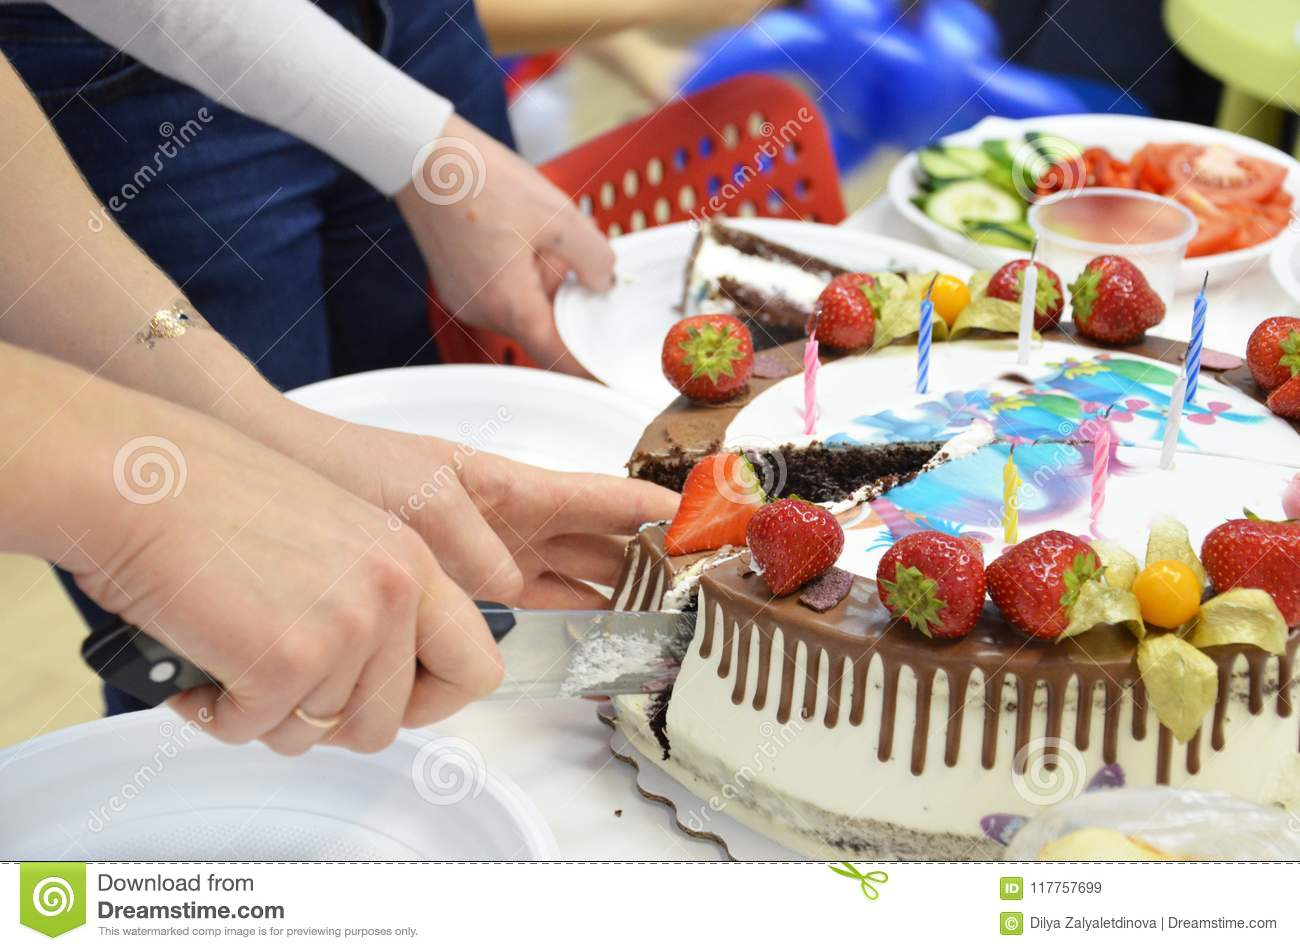 Hand Cut The Birthday Cake With KnifeBirthday Inscription Congratulations A Table Full Of